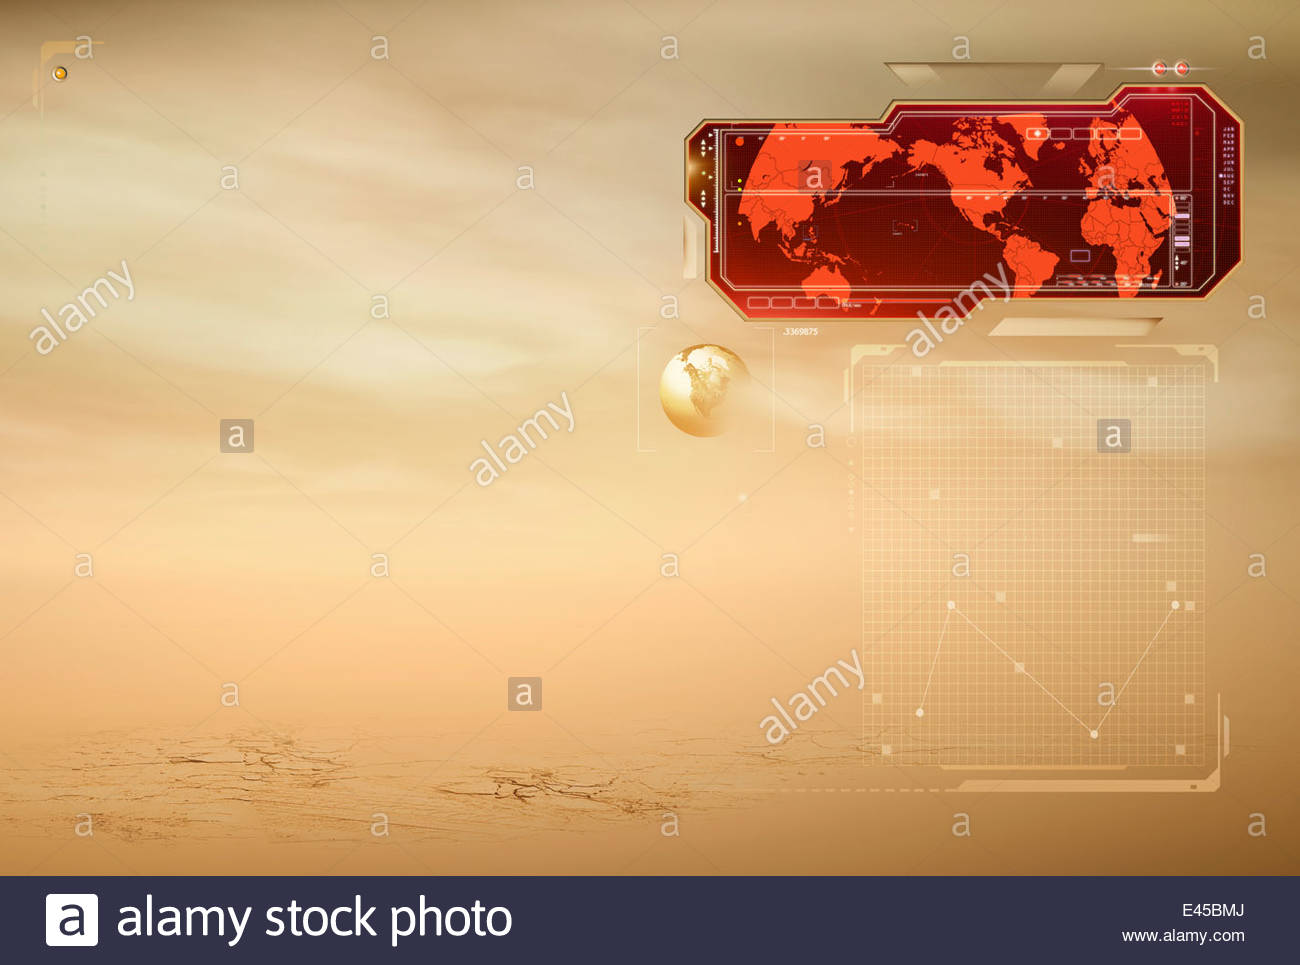 Red world map and arid landscape - Stock Image